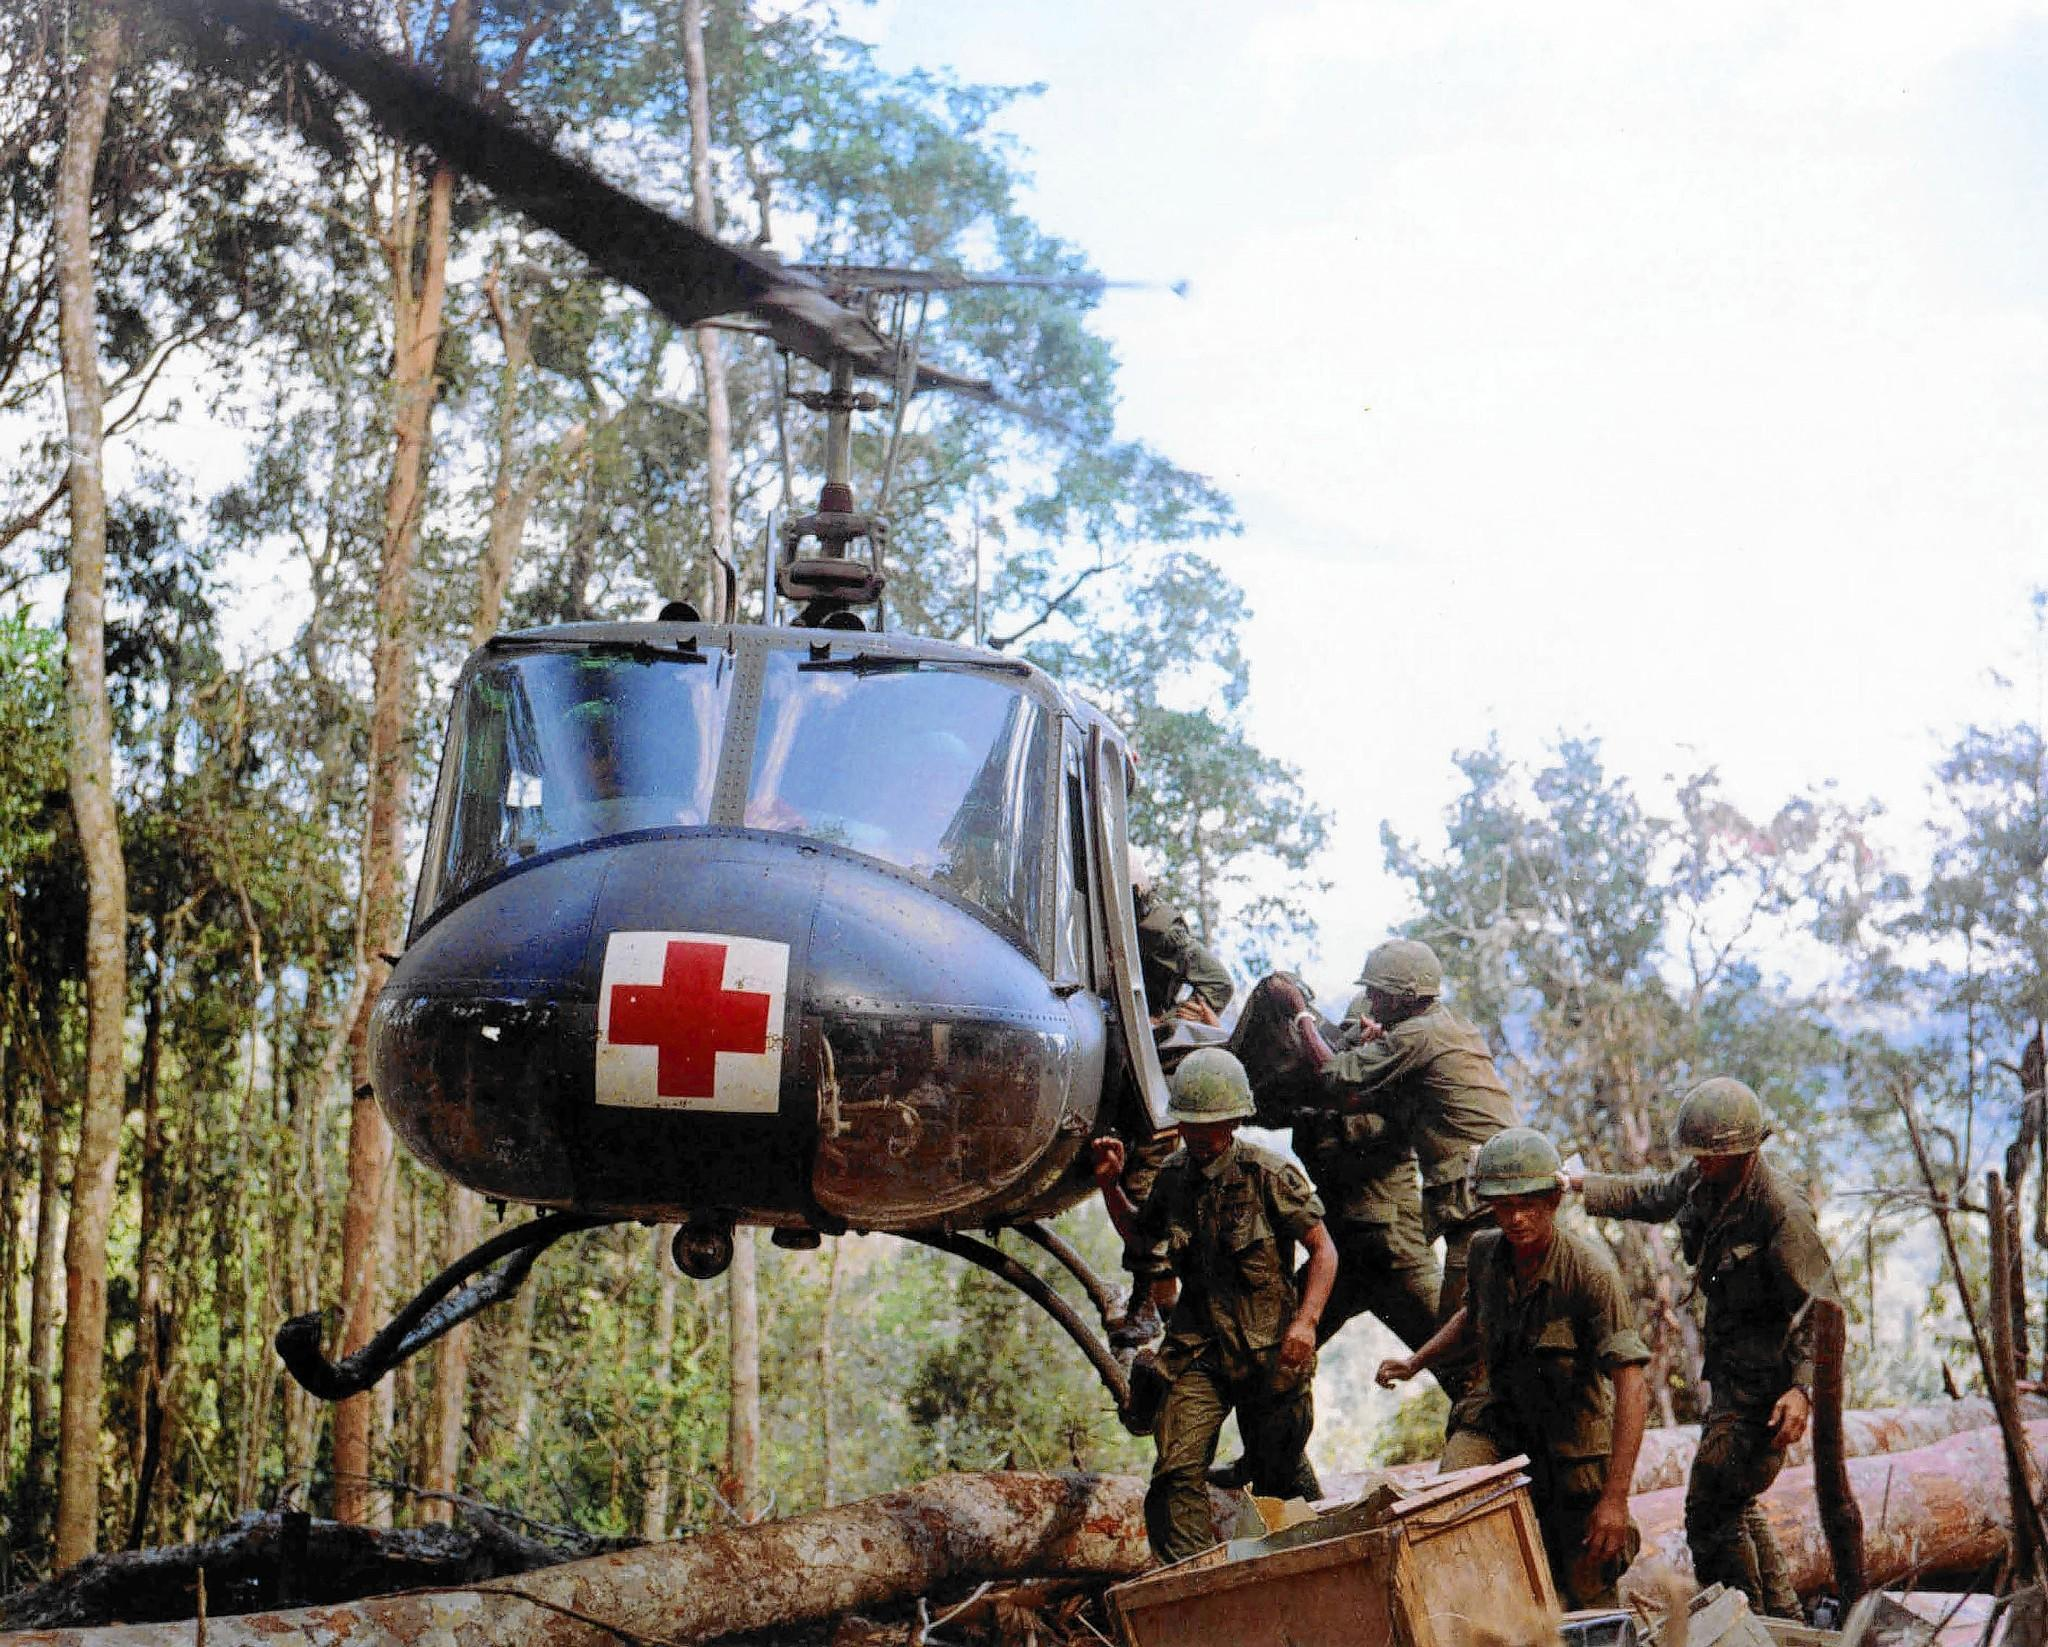 Members of the 173rd Airborne Brigade load casualties onto a helicopter in Vietnam in November 1967 for evacuation to a field hospital.